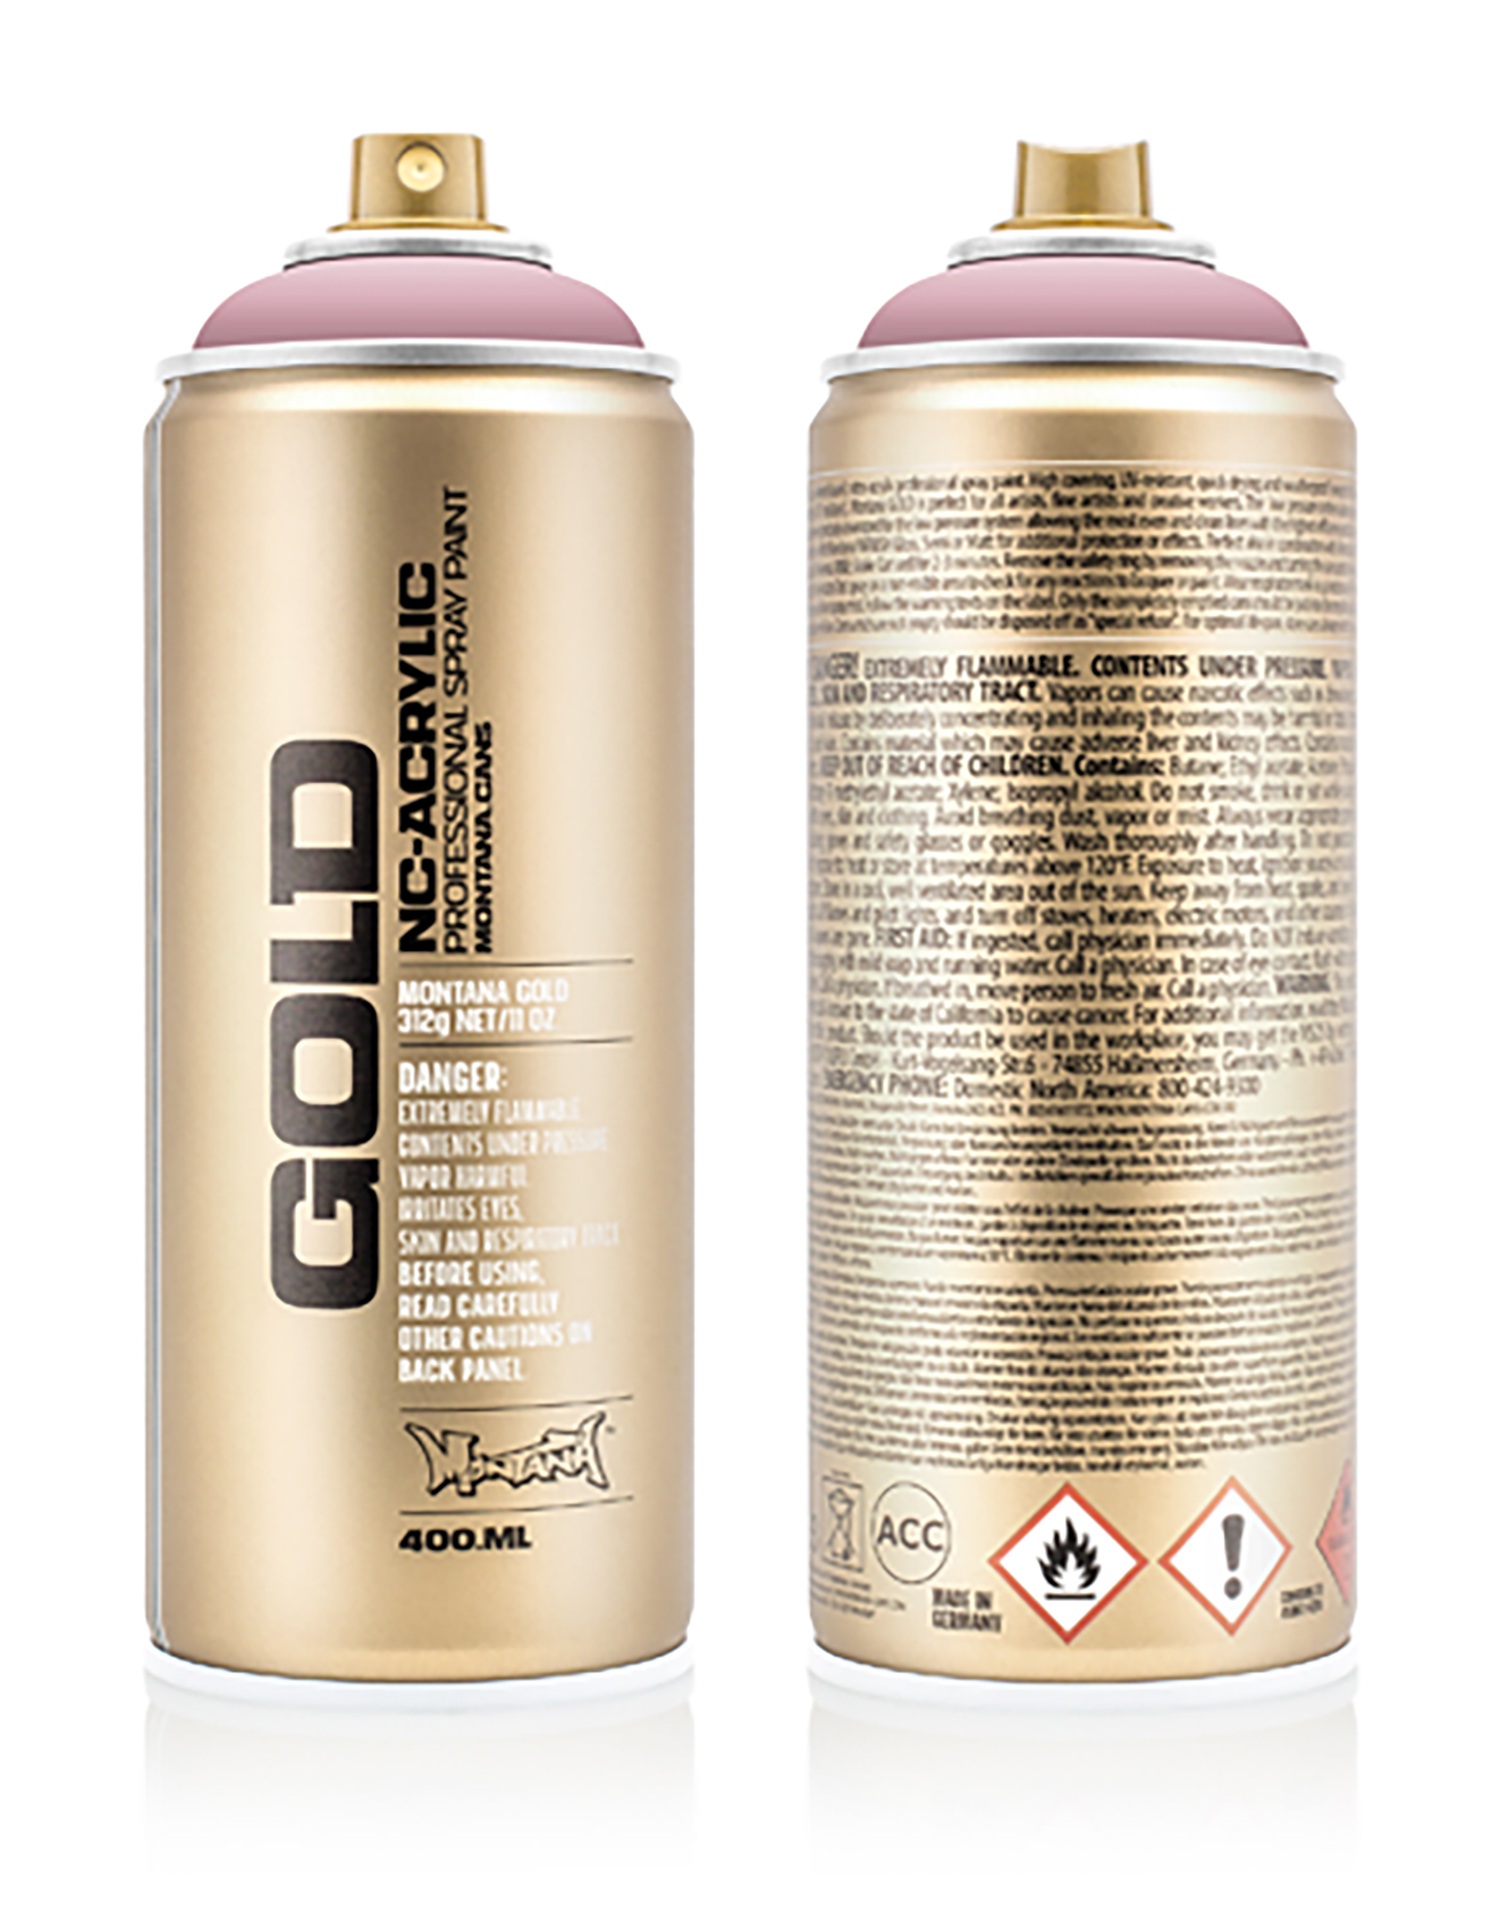 MONTANA-GOLD-SPRAY-400ML-G-4010